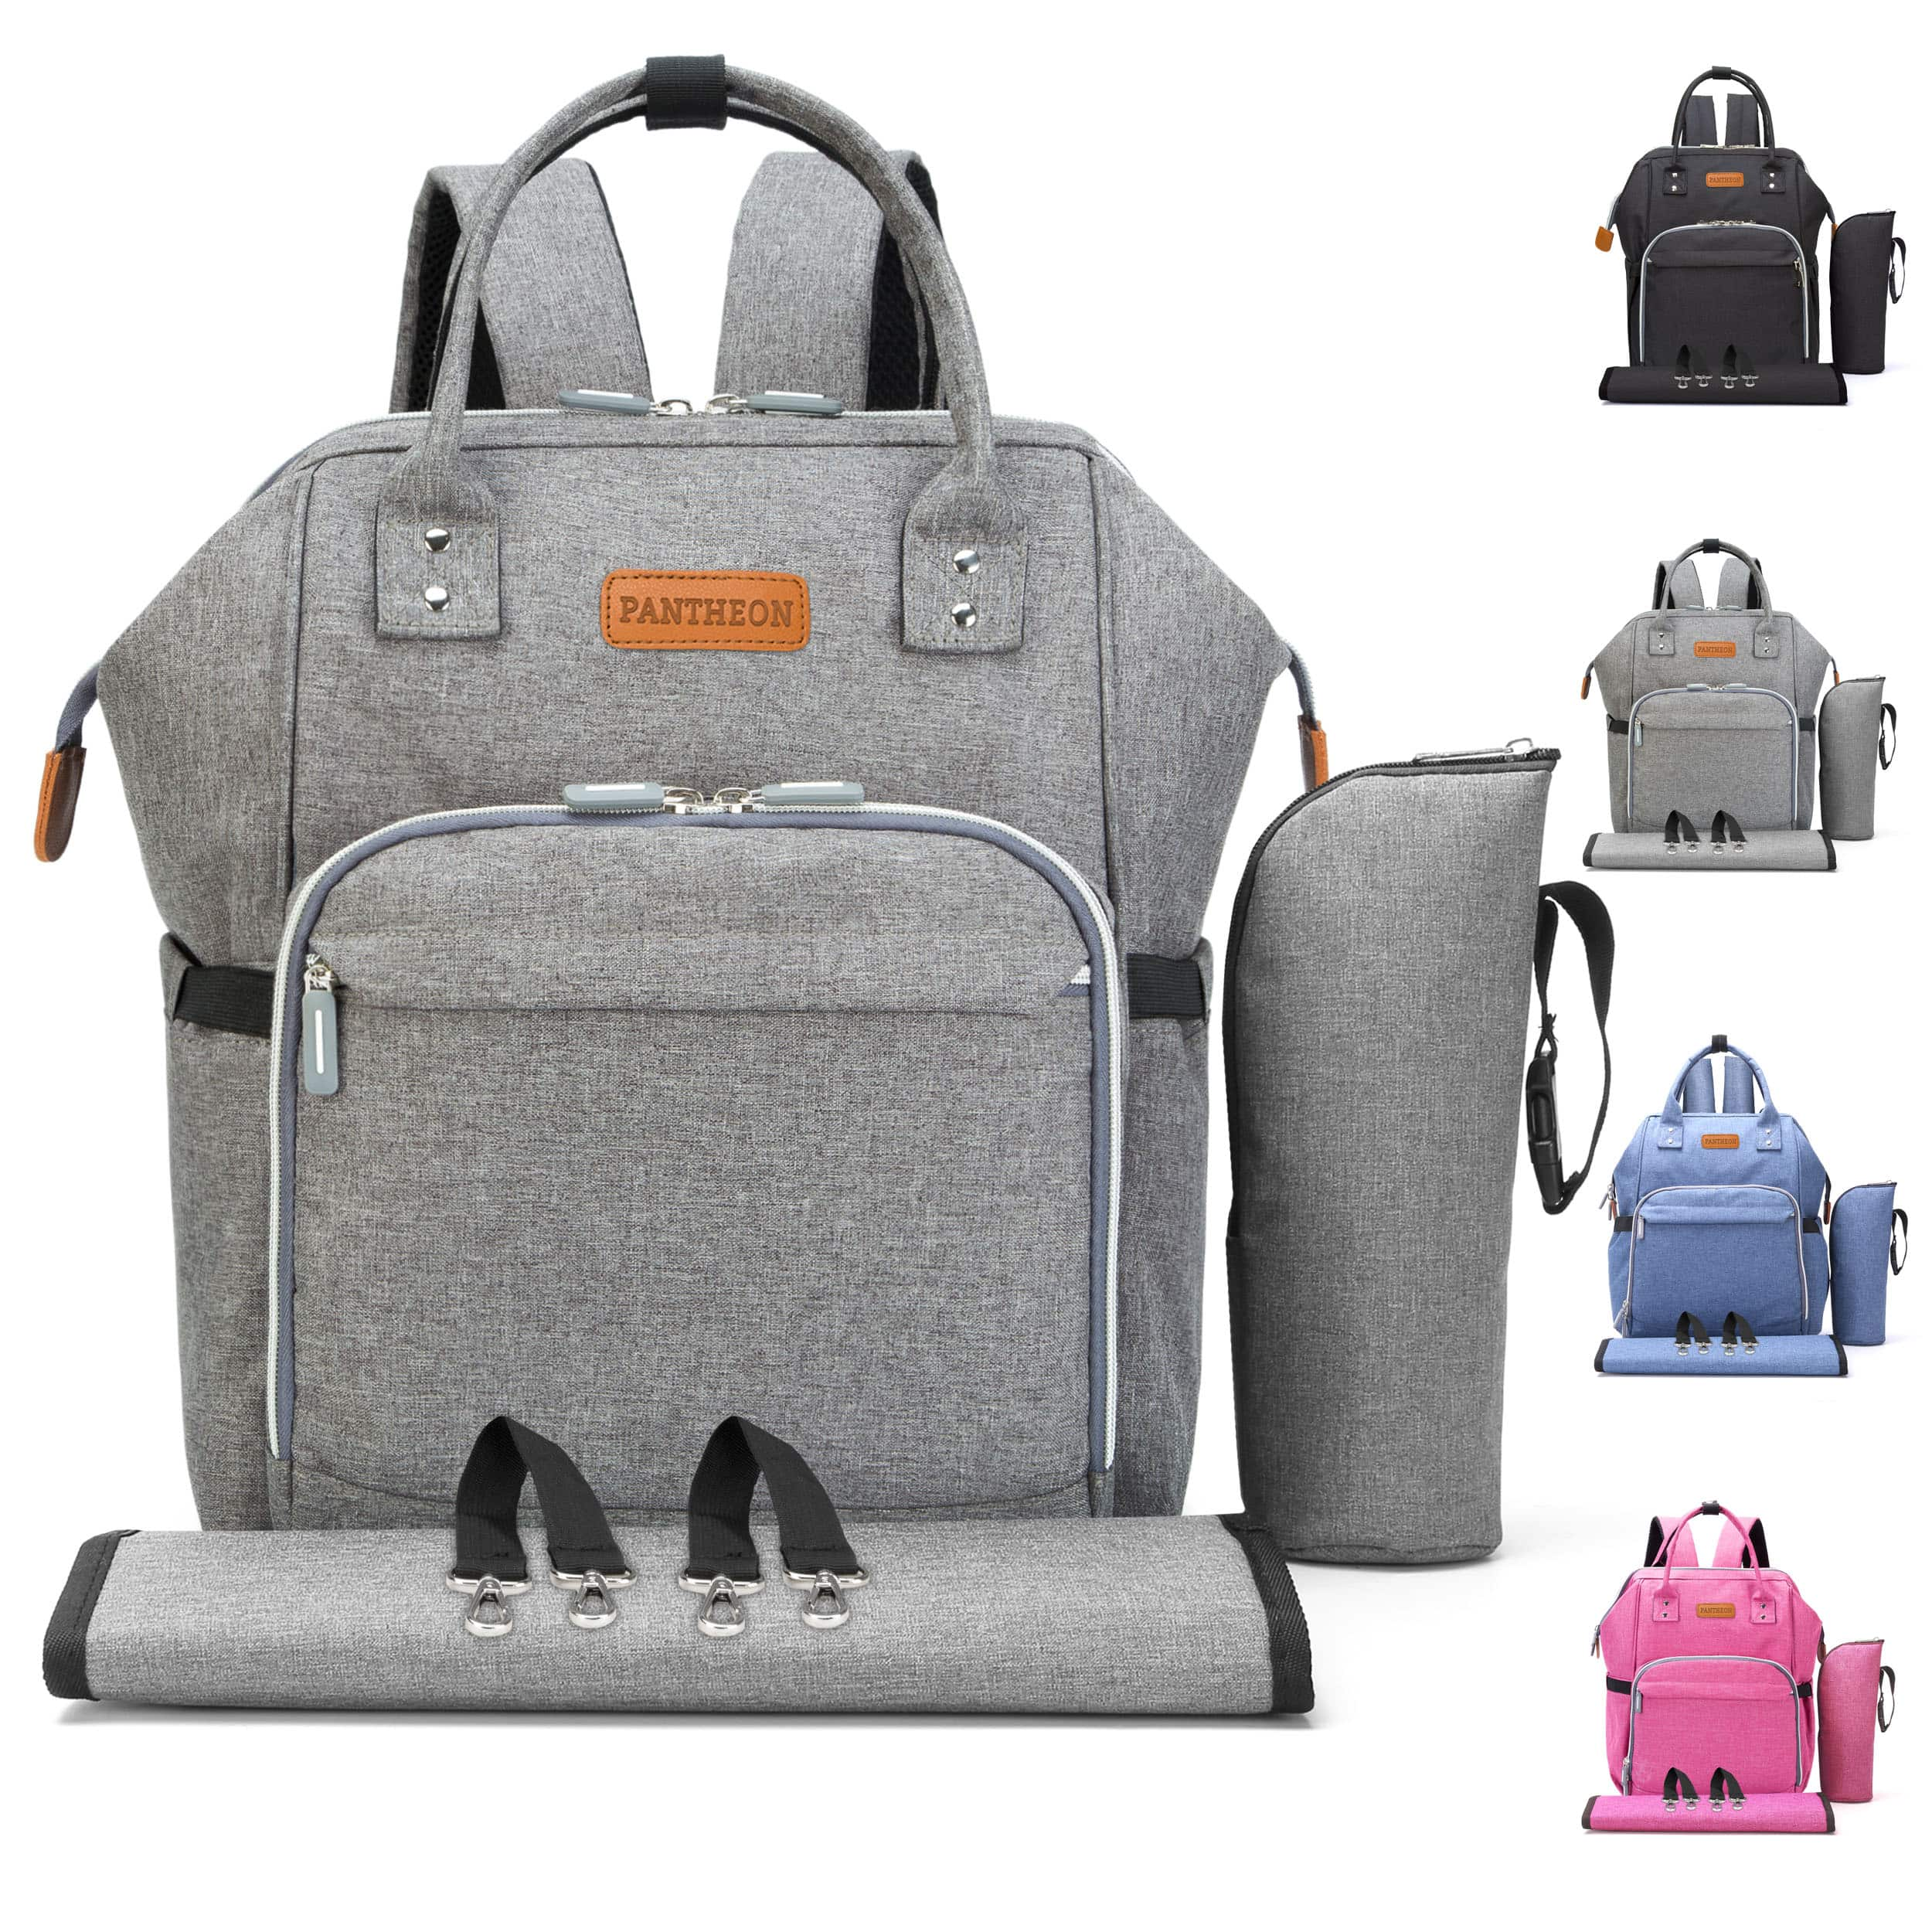 Diaper Backpack Bag with Wide Open Design, Changing Pad, Insulated Cooler Pocket for Bottle Storage, Stroller Straps, by Pantheon, for Boys or Girls, Mom or Dad $23